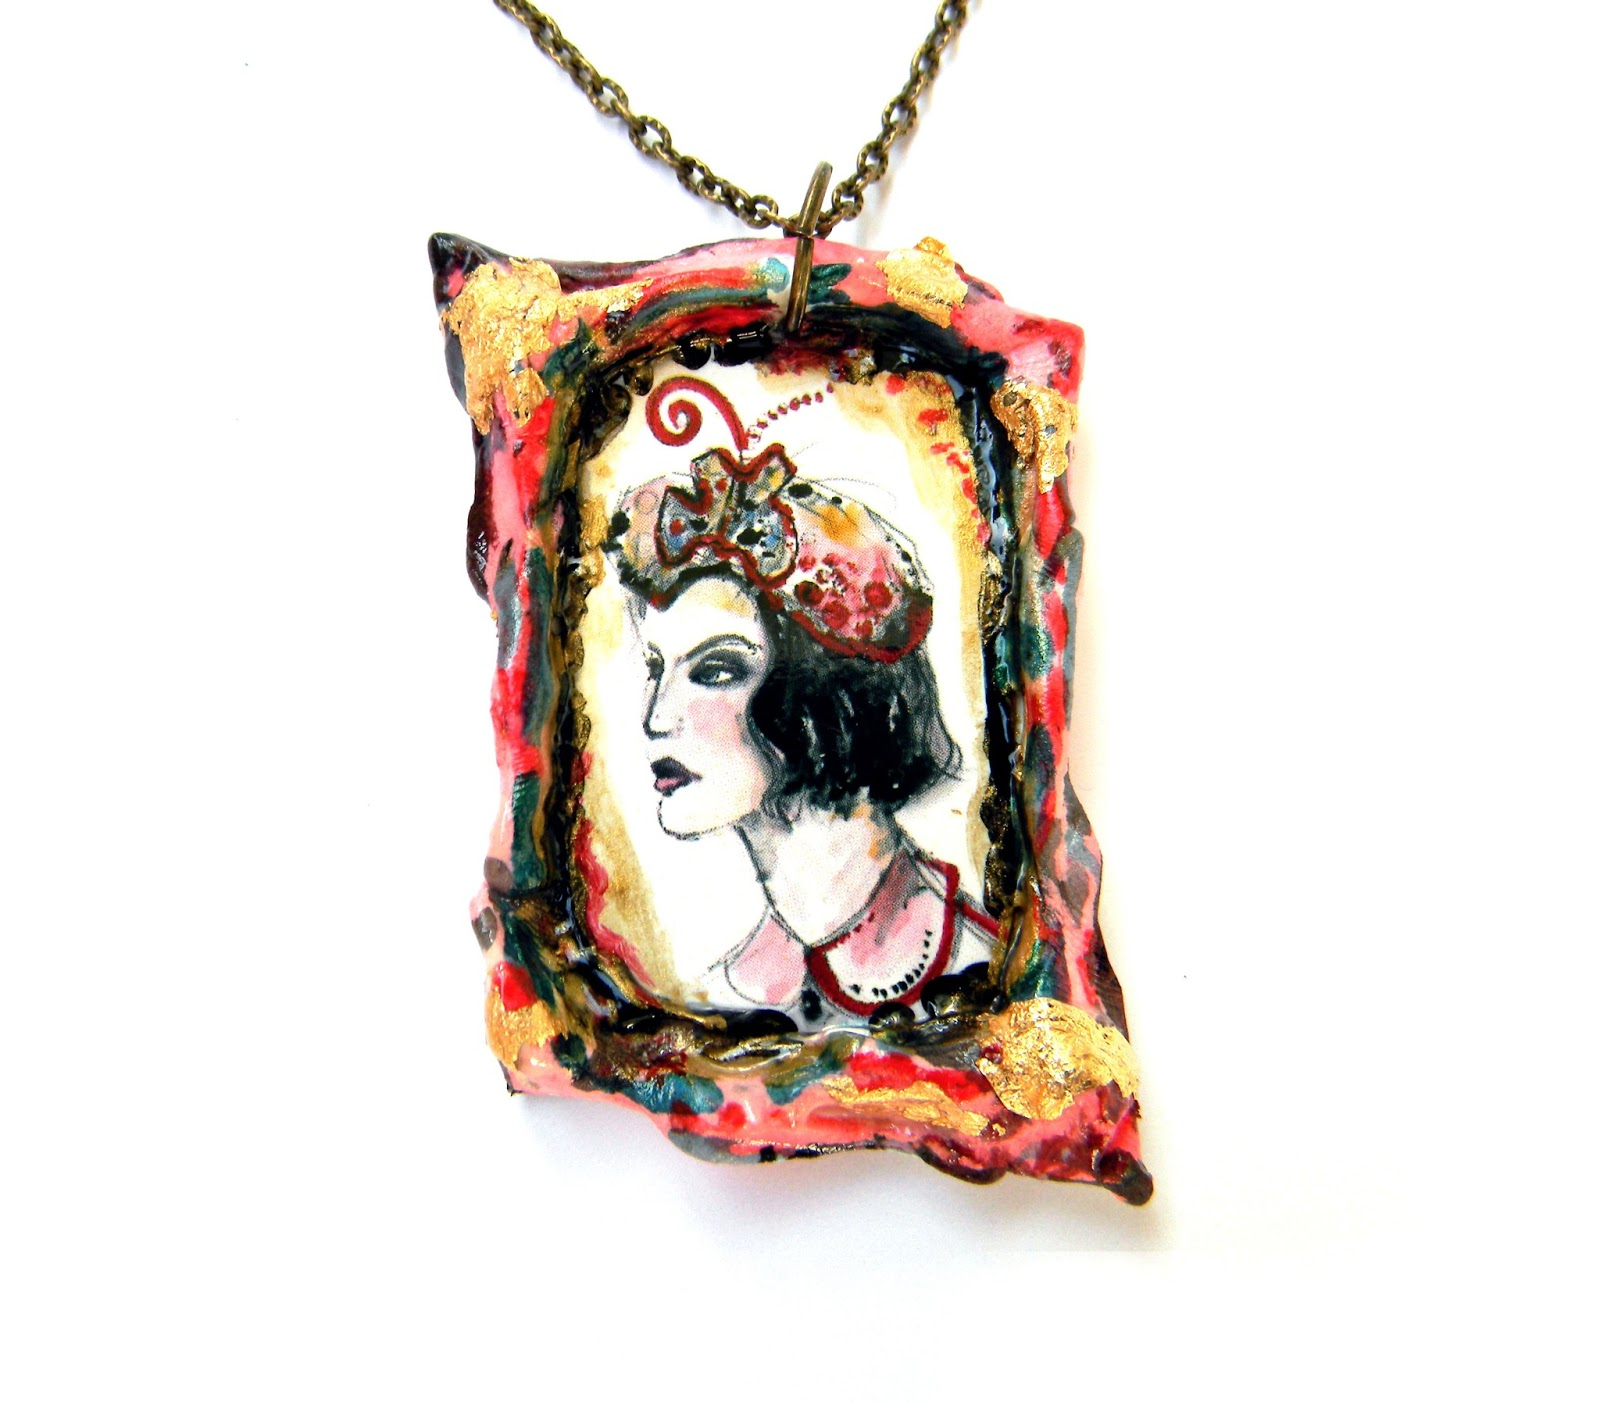 Unique Handmade Fashion Jewelry Victorian Jewelty Original Handcrafted Pendant Necklace Design